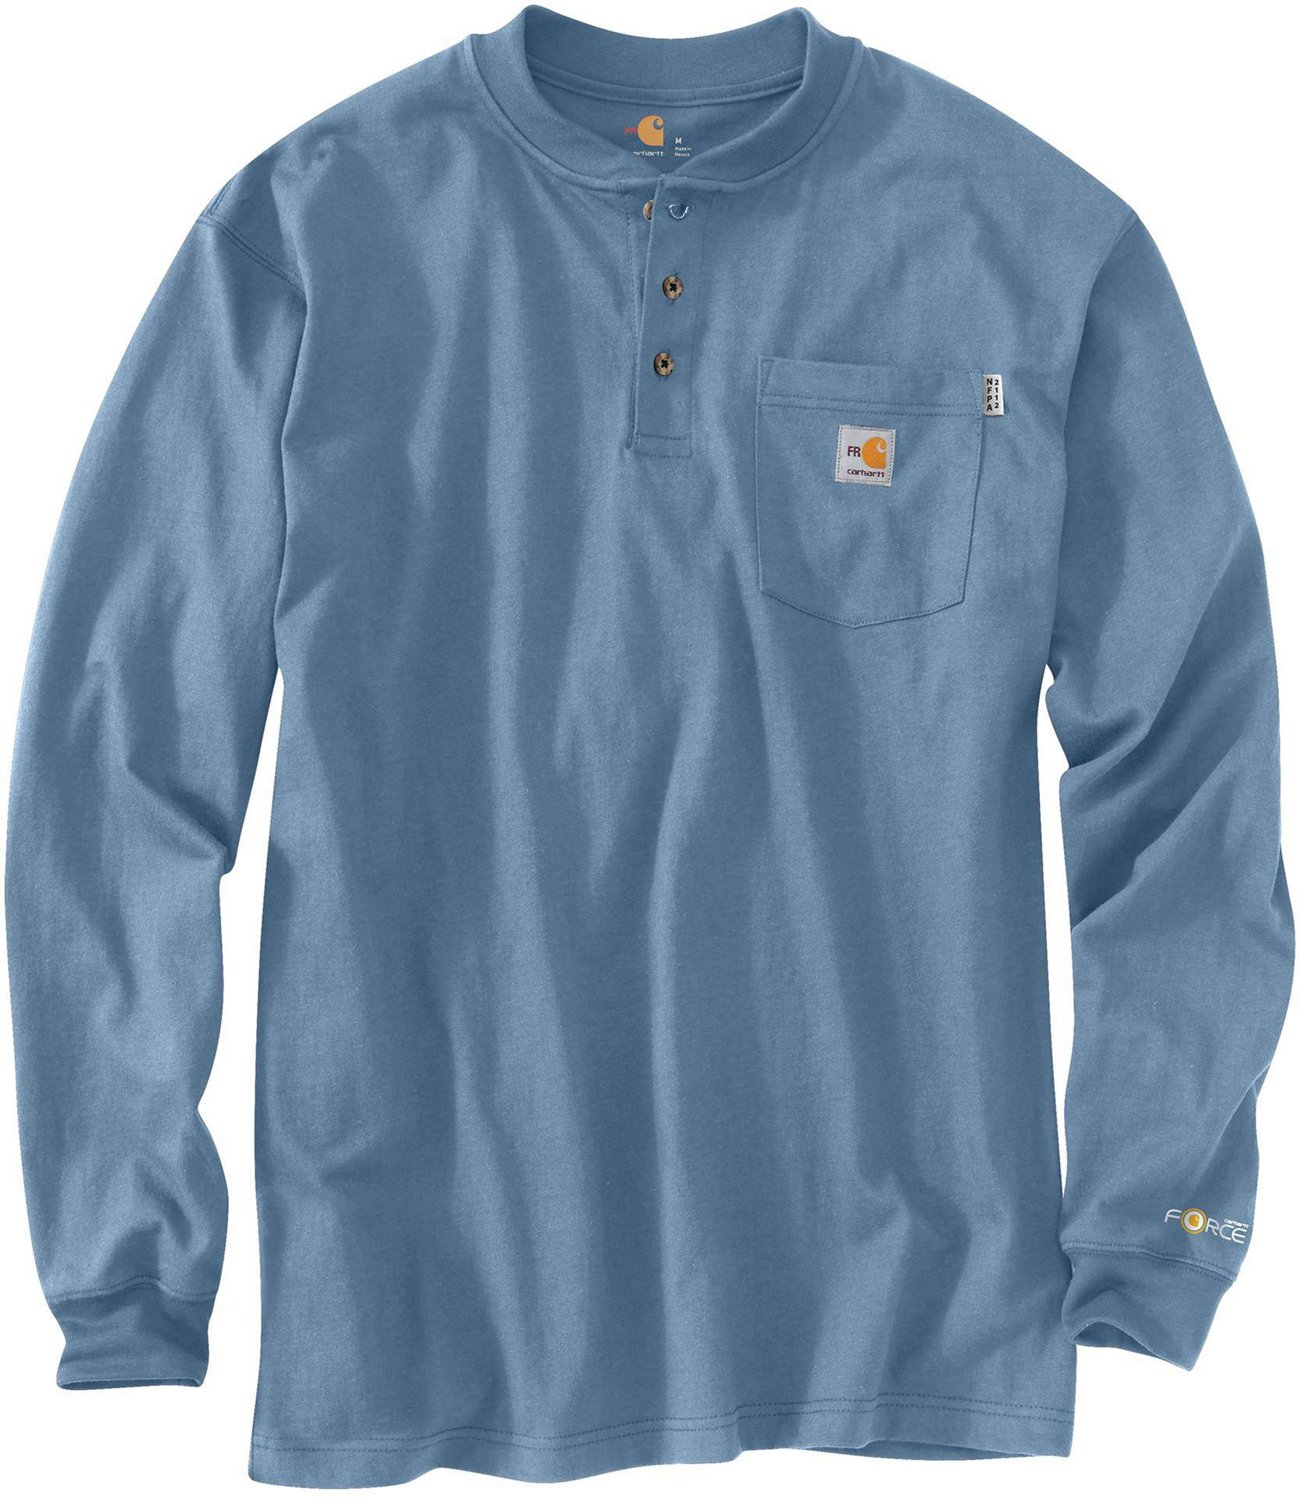 e08b9893 Display product reviews for Carhartt Men's Flame-Resistant Force Cotton Long  Sleeve Henley